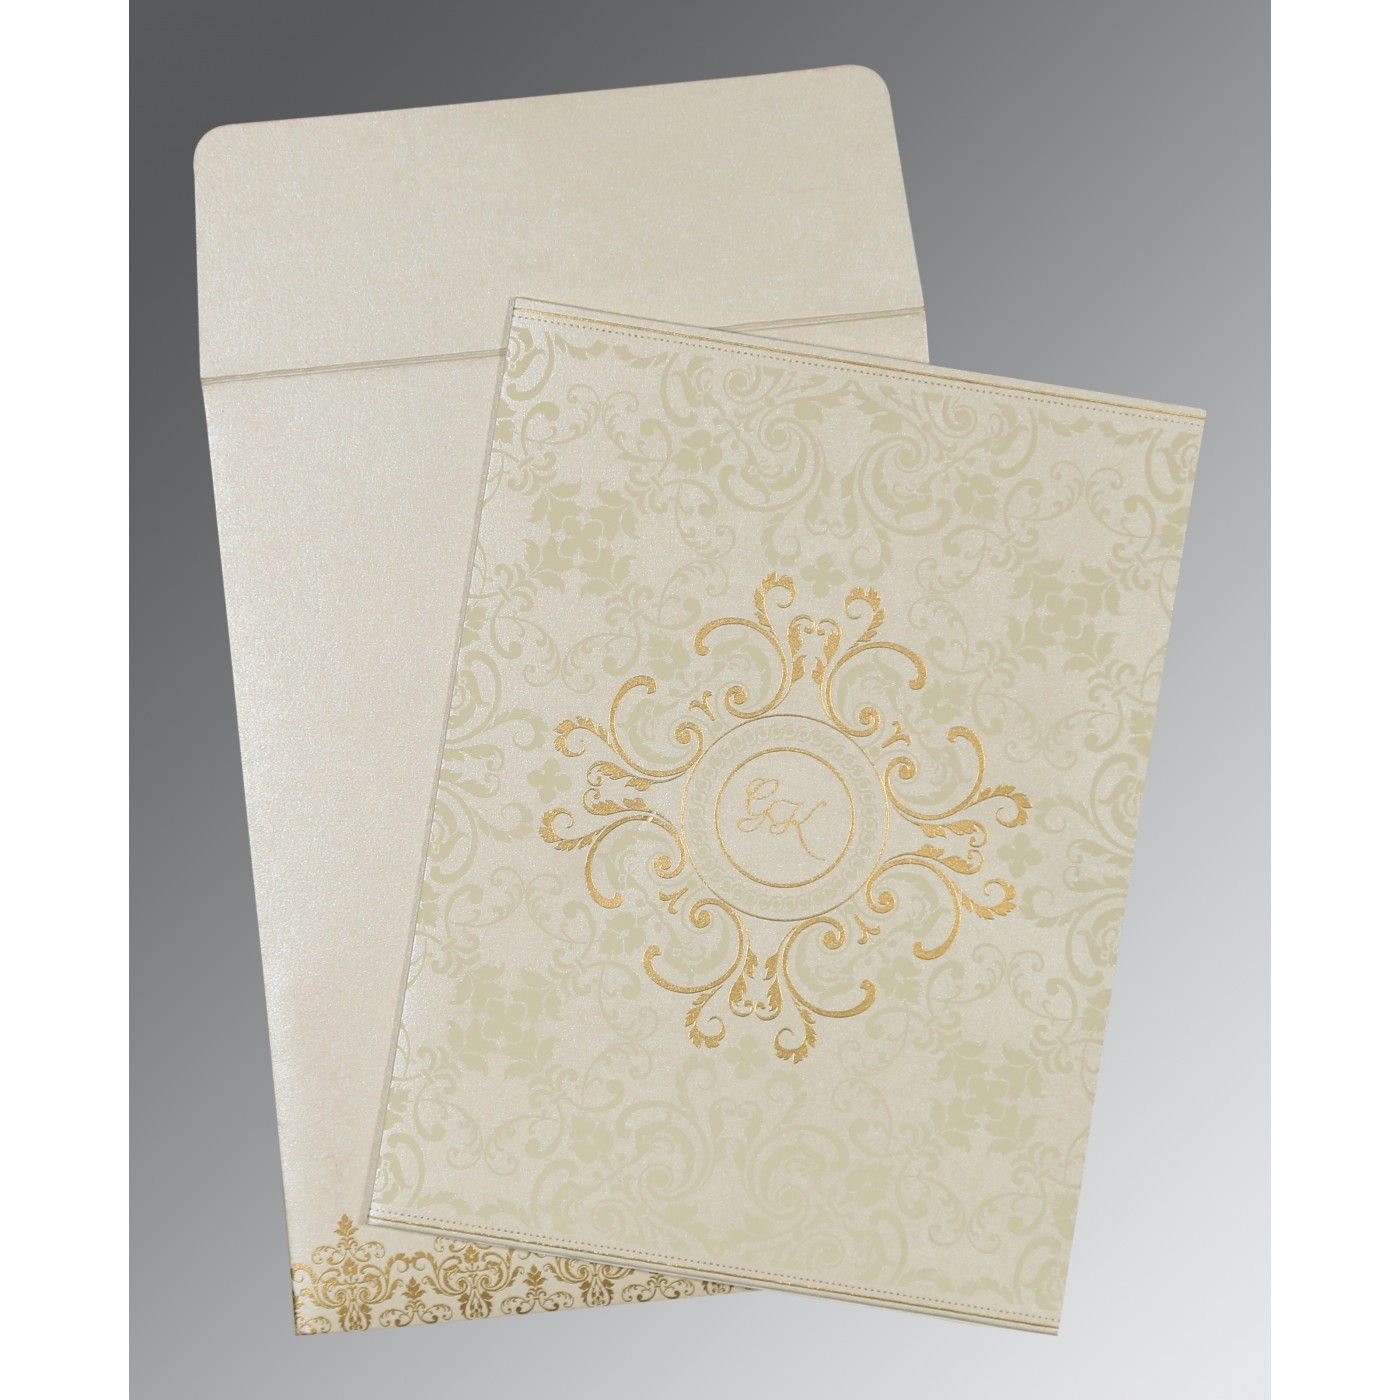 OFF-WHITE SHIMMERY SCREEN PRINTED WEDDING CARD : CD-8244B - IndianWeddingCards